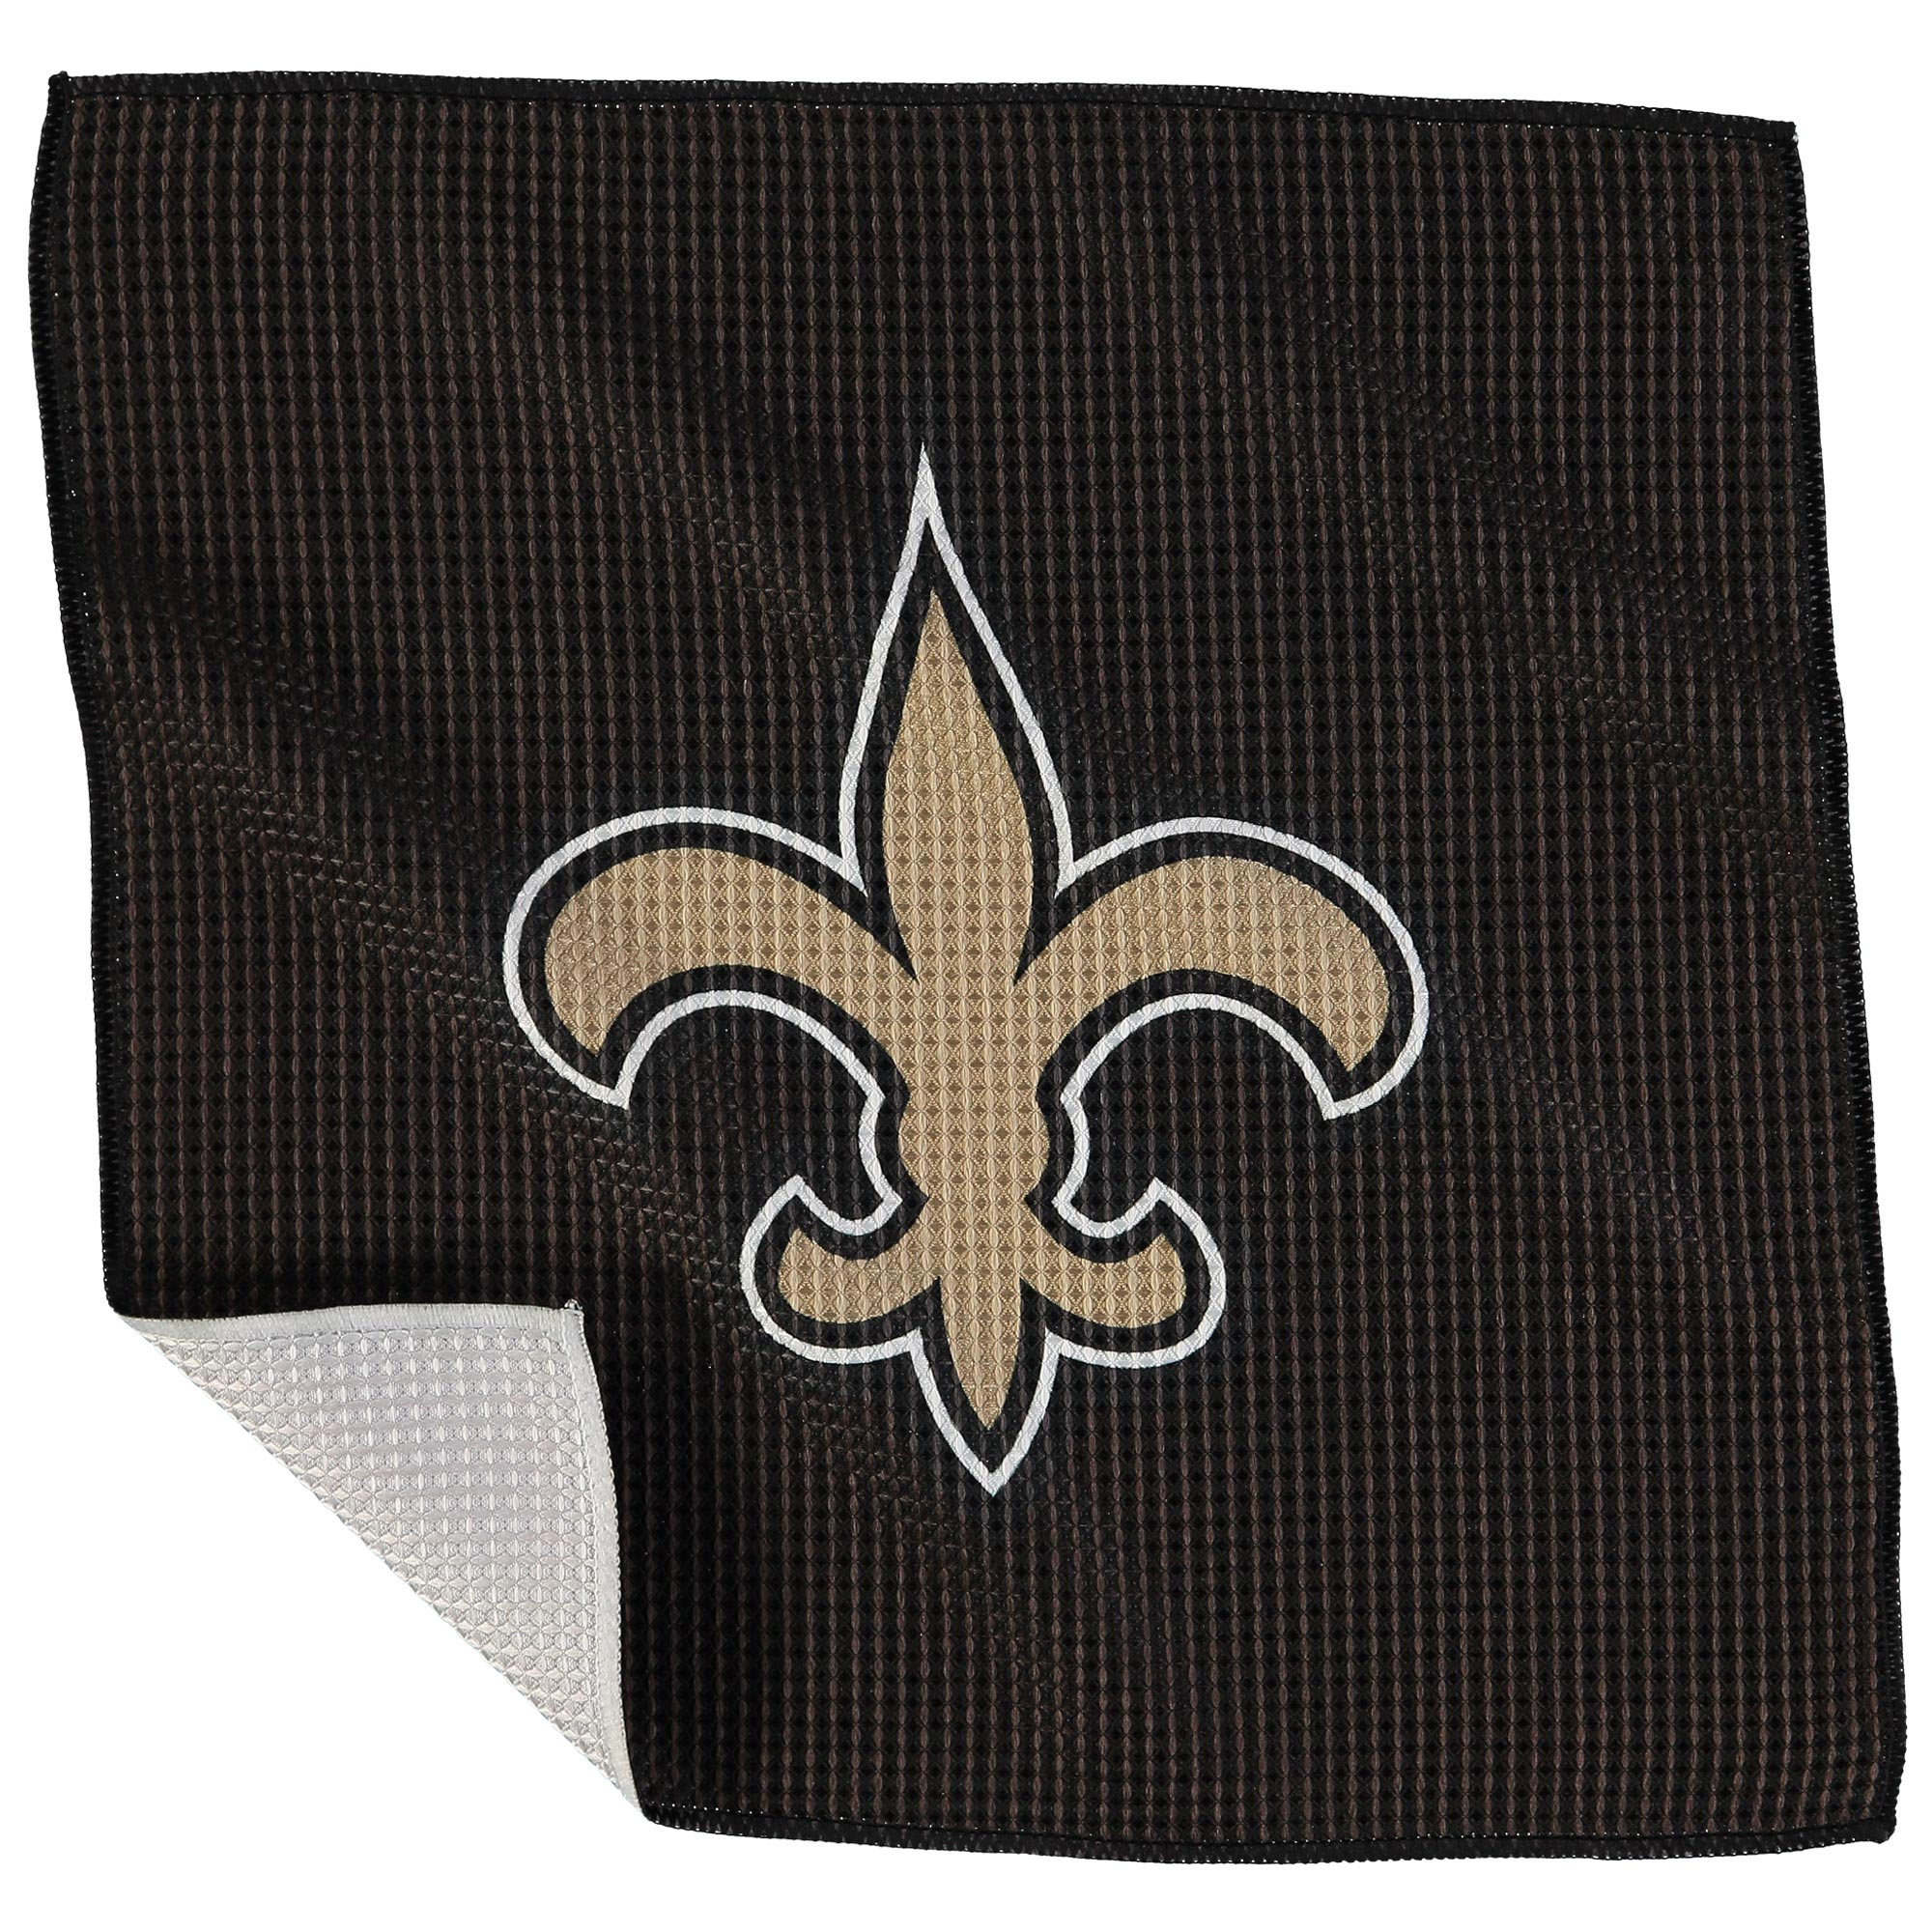 "New Orleans Saints 16"" x 16"" Microfiber Towel - No Size"